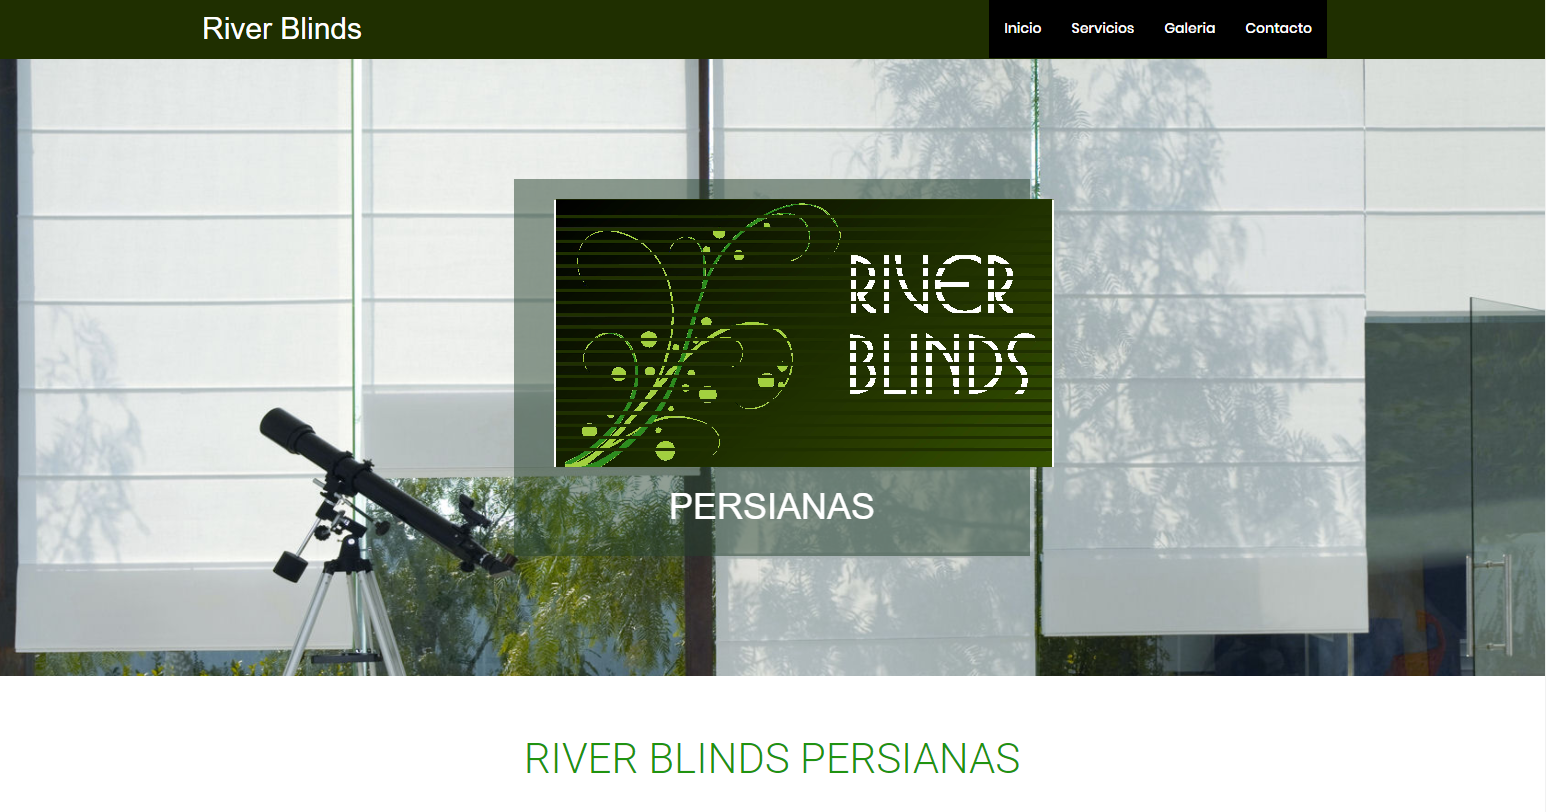 River Blinds Persionas